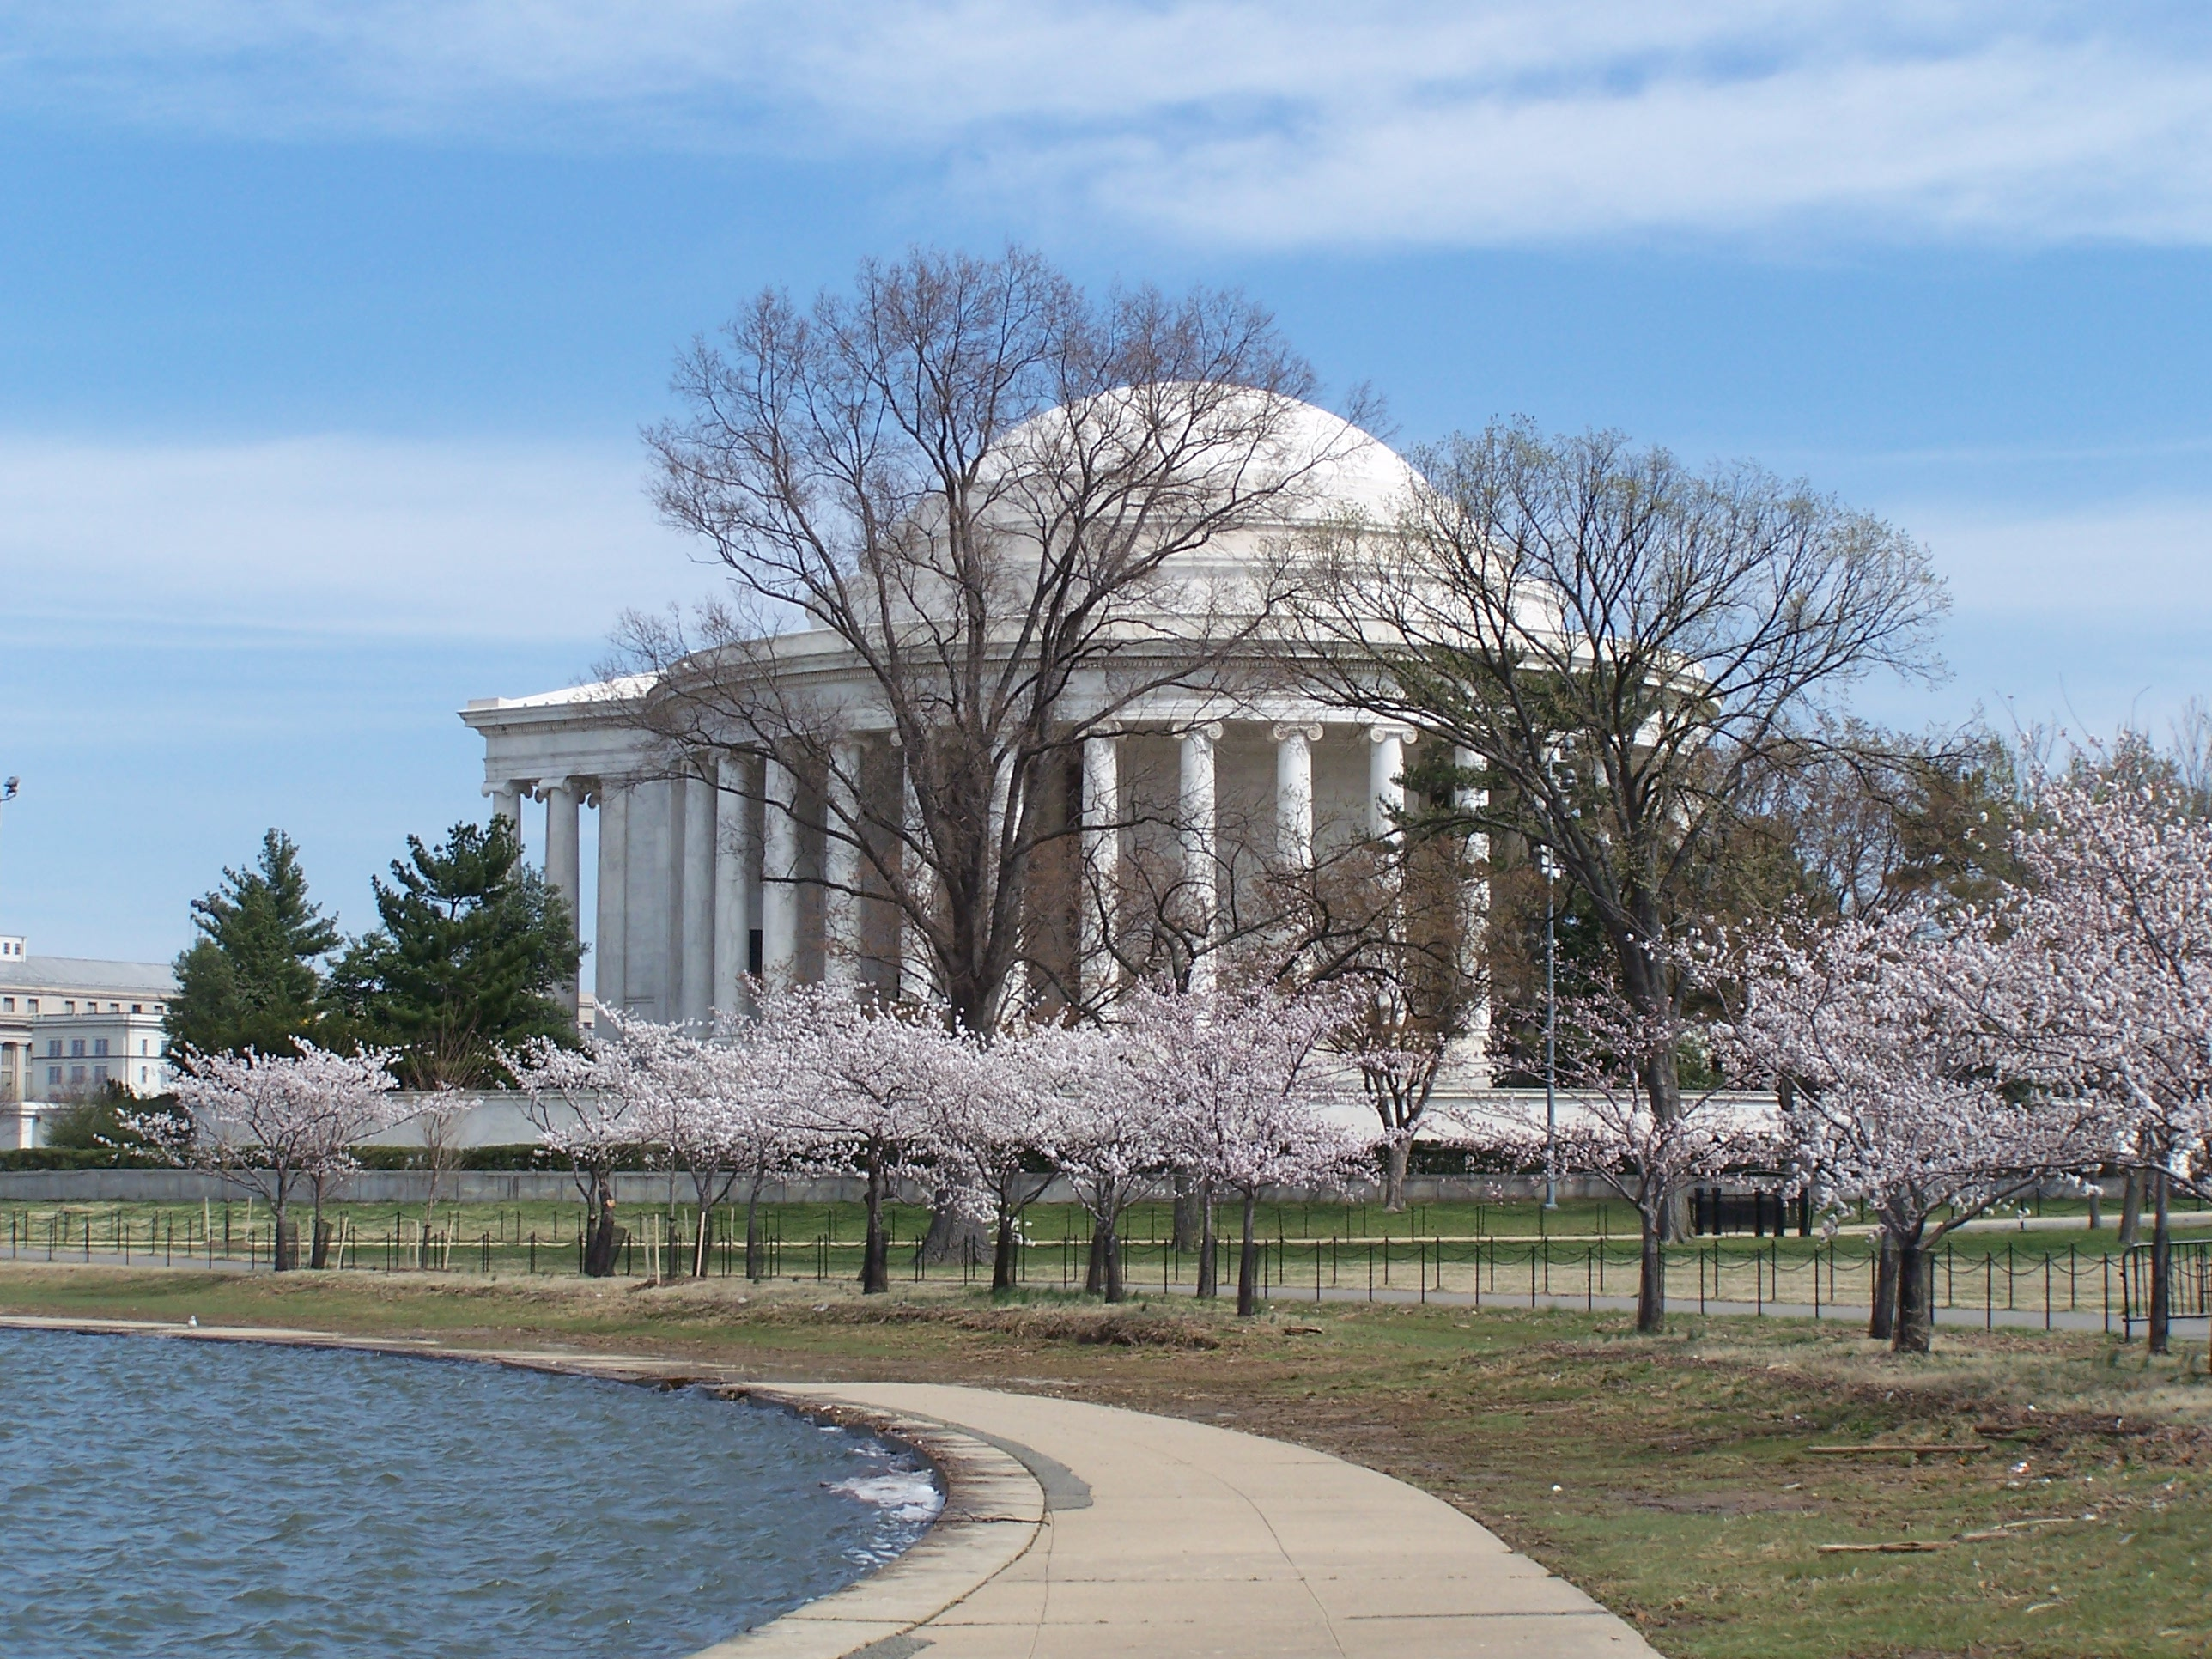 The Jefferson Memorial with Cherry Blossoms